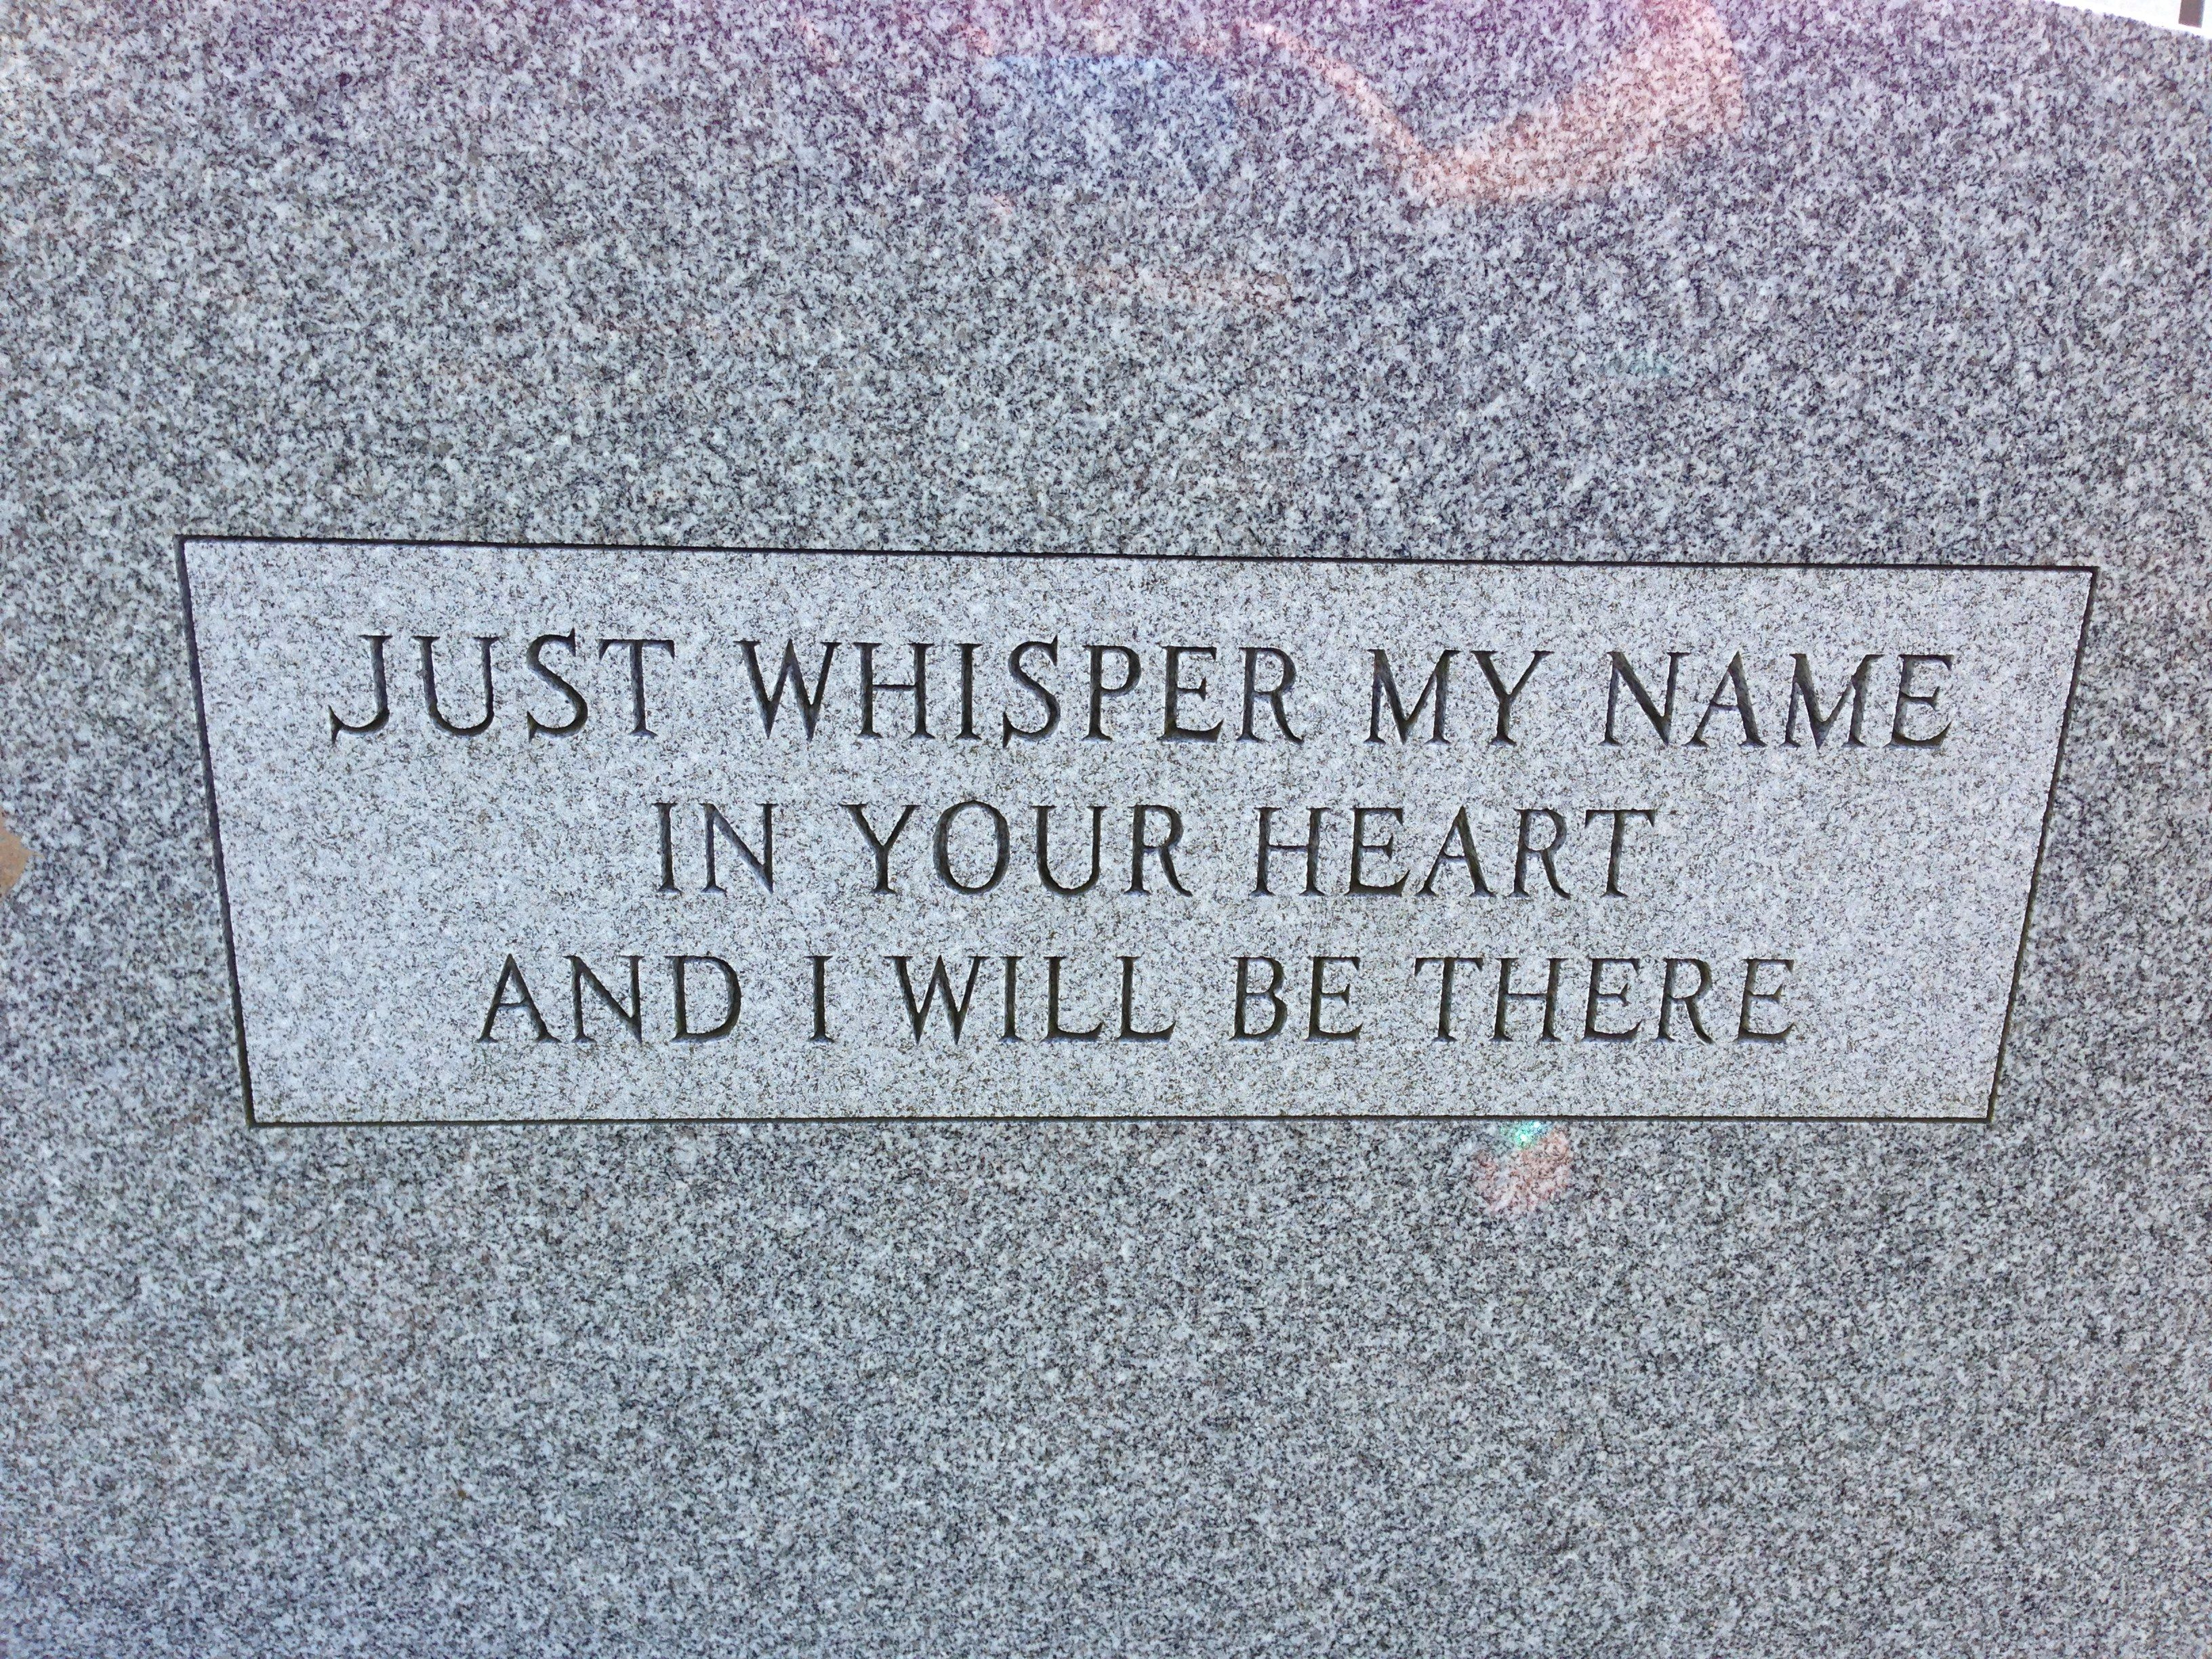 Beautifuli saw this on the back of a grave stone what a funeral buycottarizona